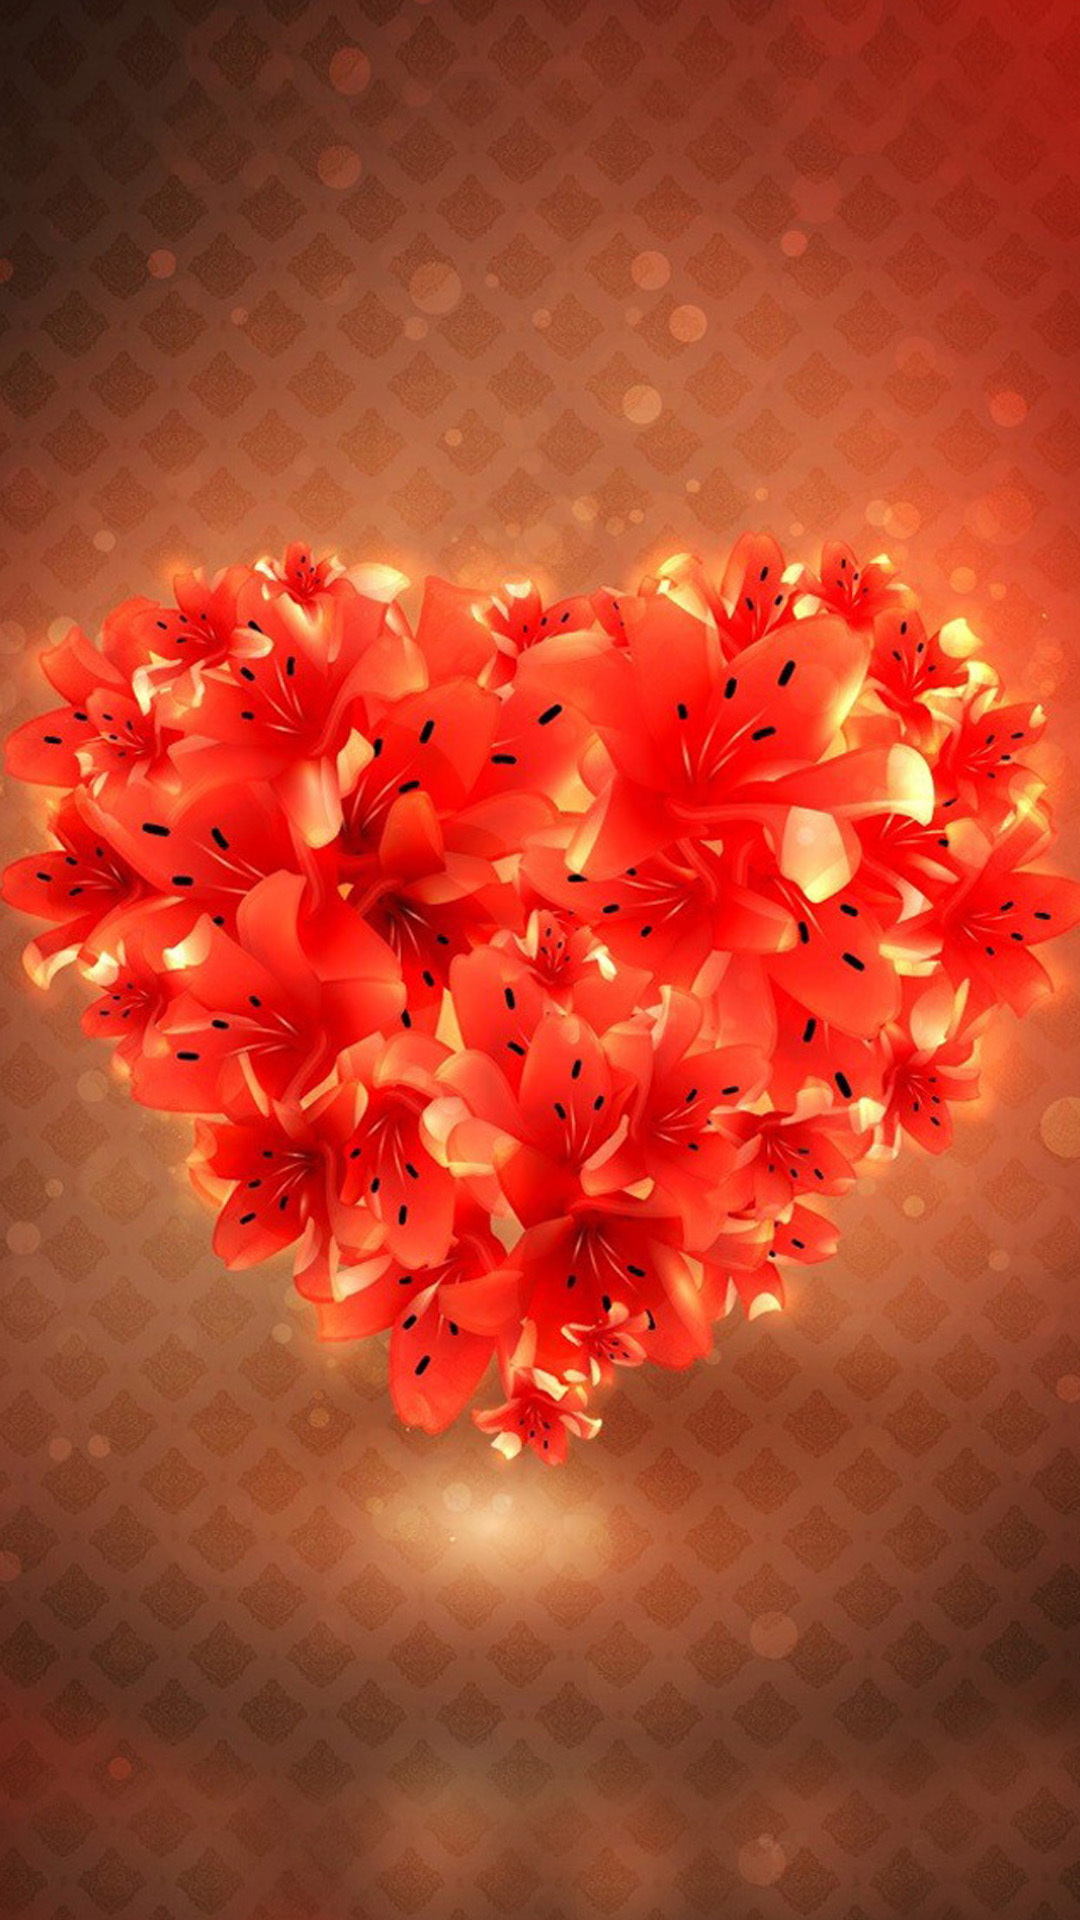 flower love heart android wallpaper - android hd wallpapers